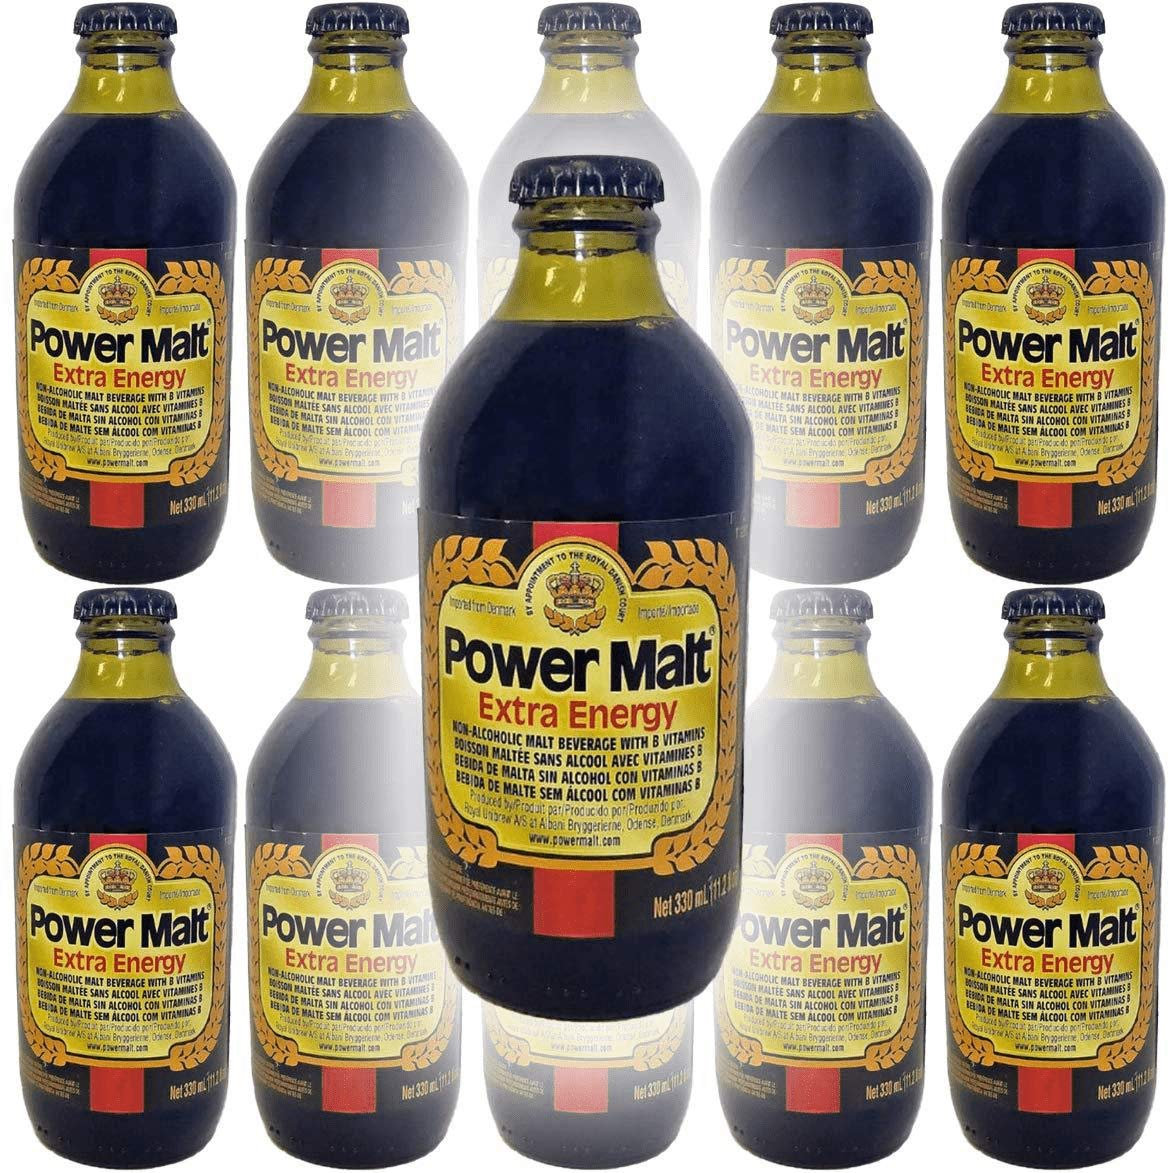 Power Malt, Extra Energy, Non-Alcoholic Malt Beverage, 11oz Glass Bottle (Pack of 10, Total of 110 Fl Oz)